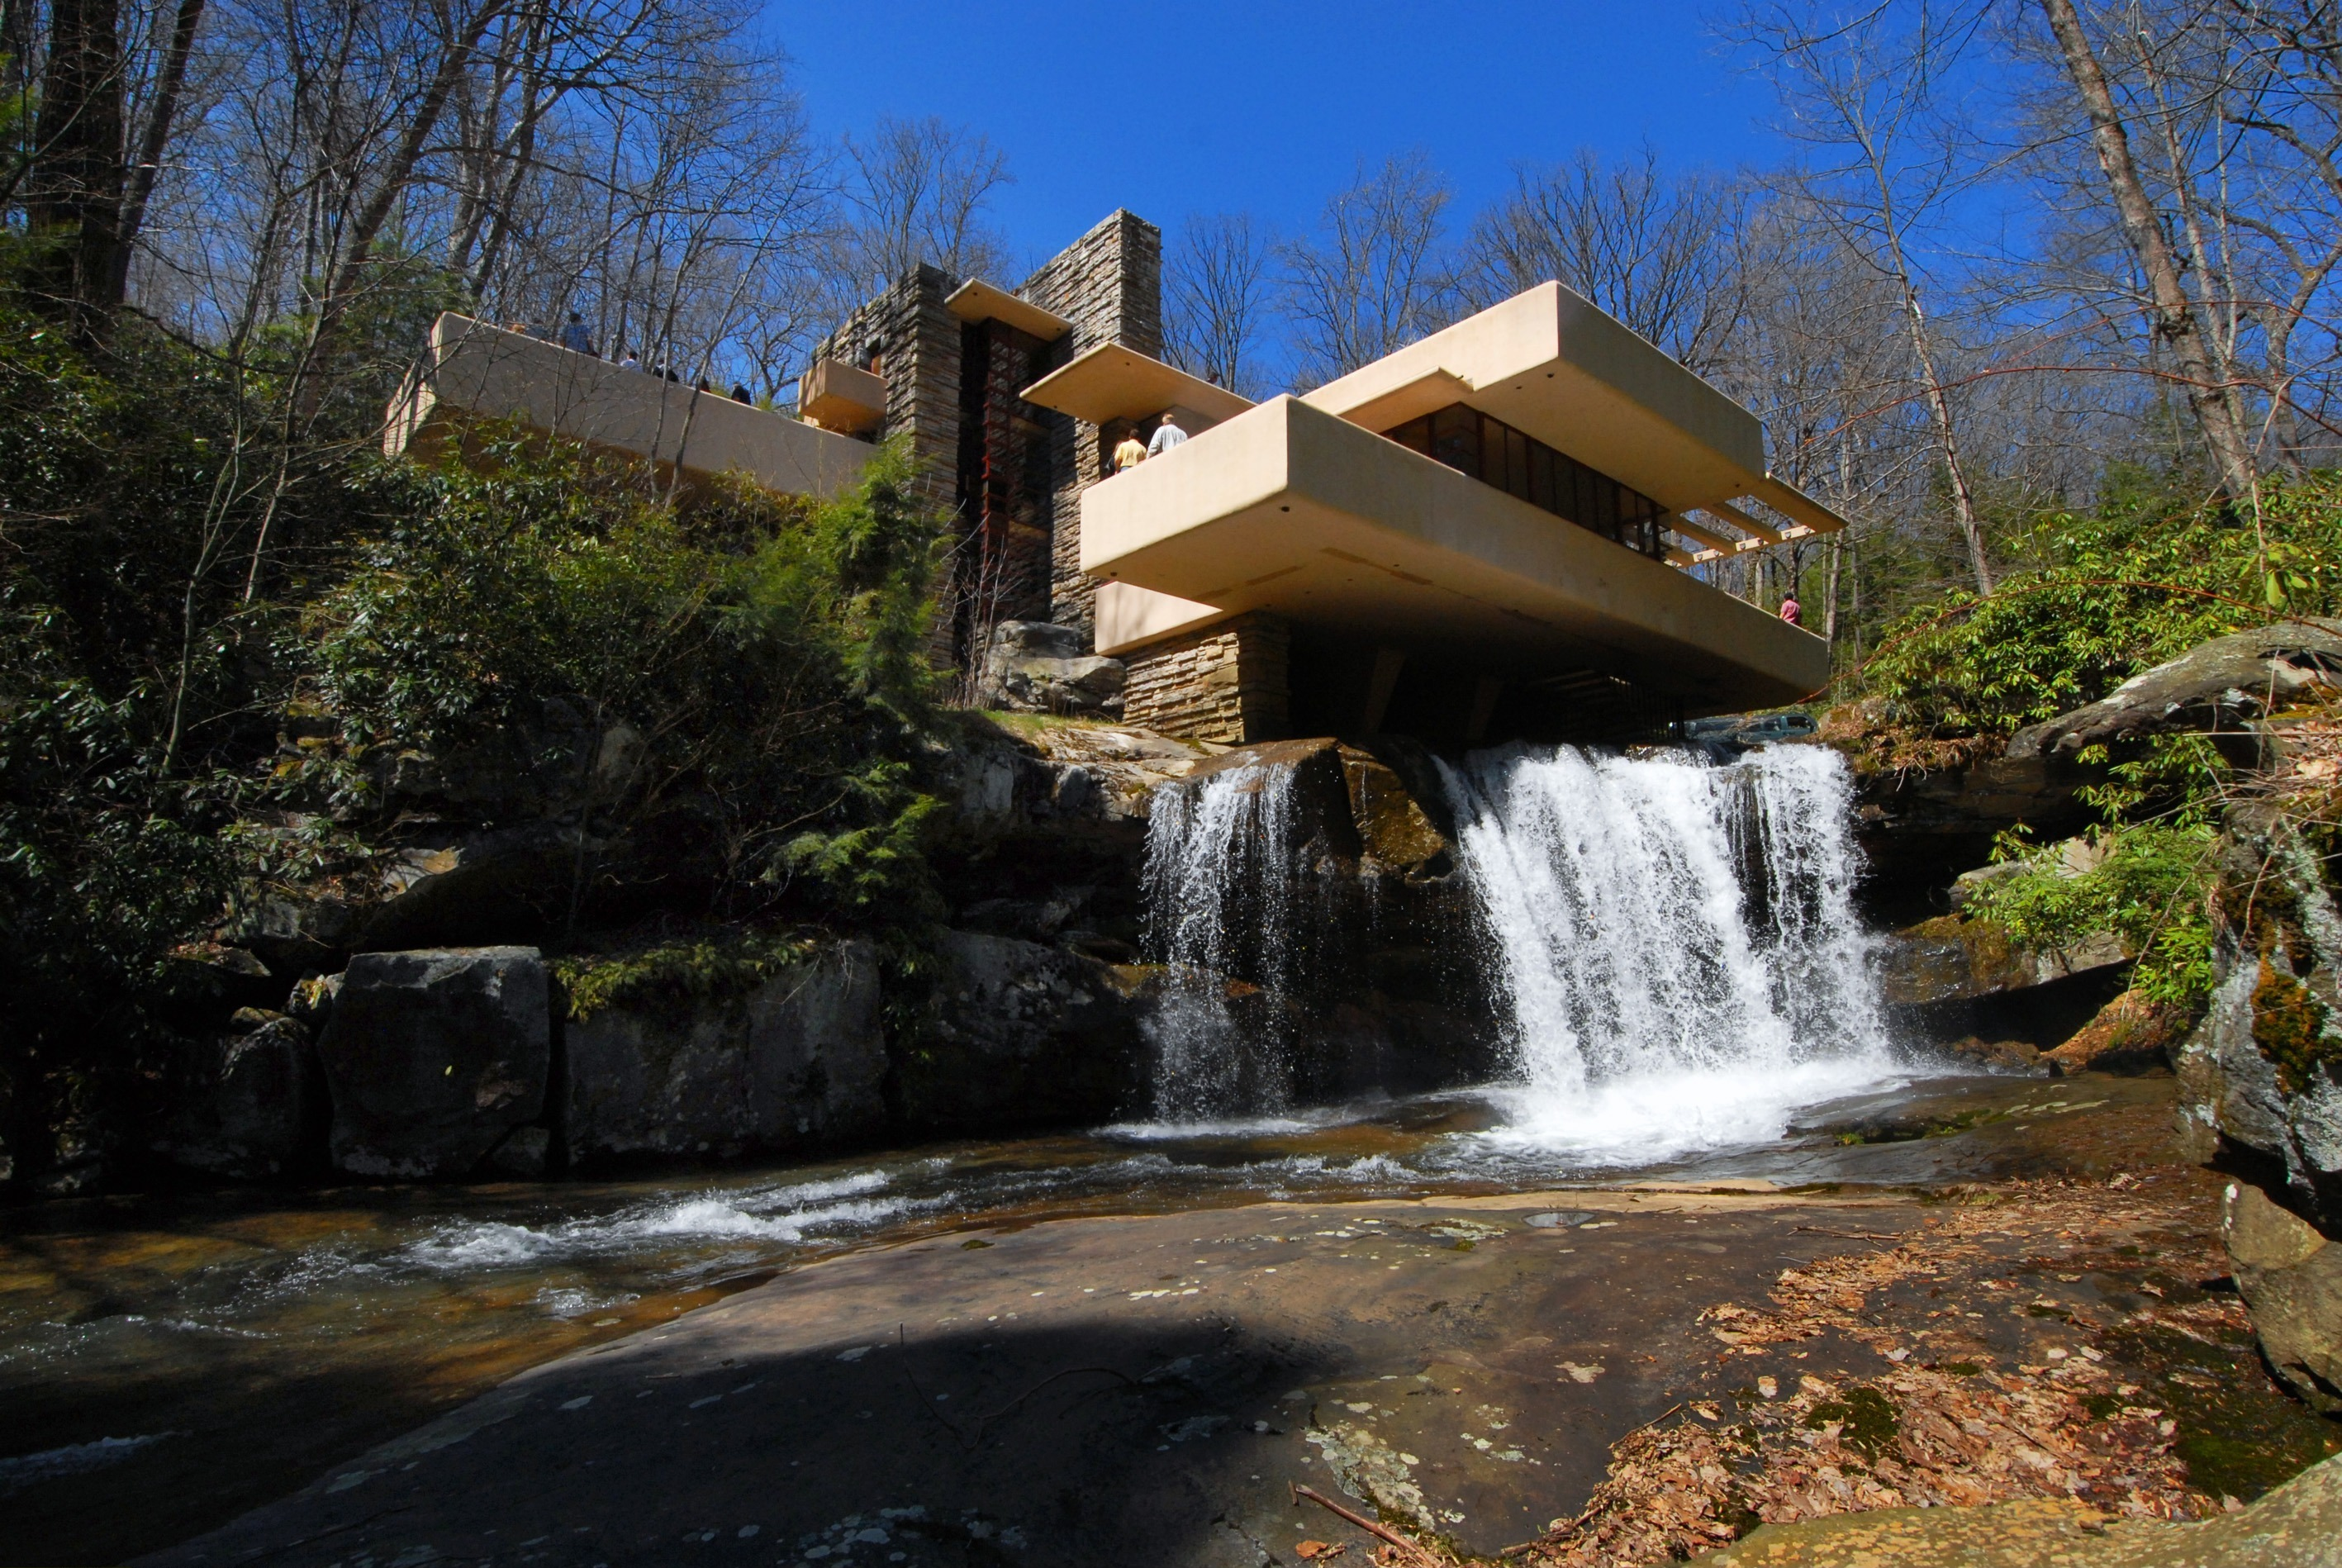 Frank Lloyd Wright Frank Lloyd Wright Was A Genius At Building Houses But His Ideas